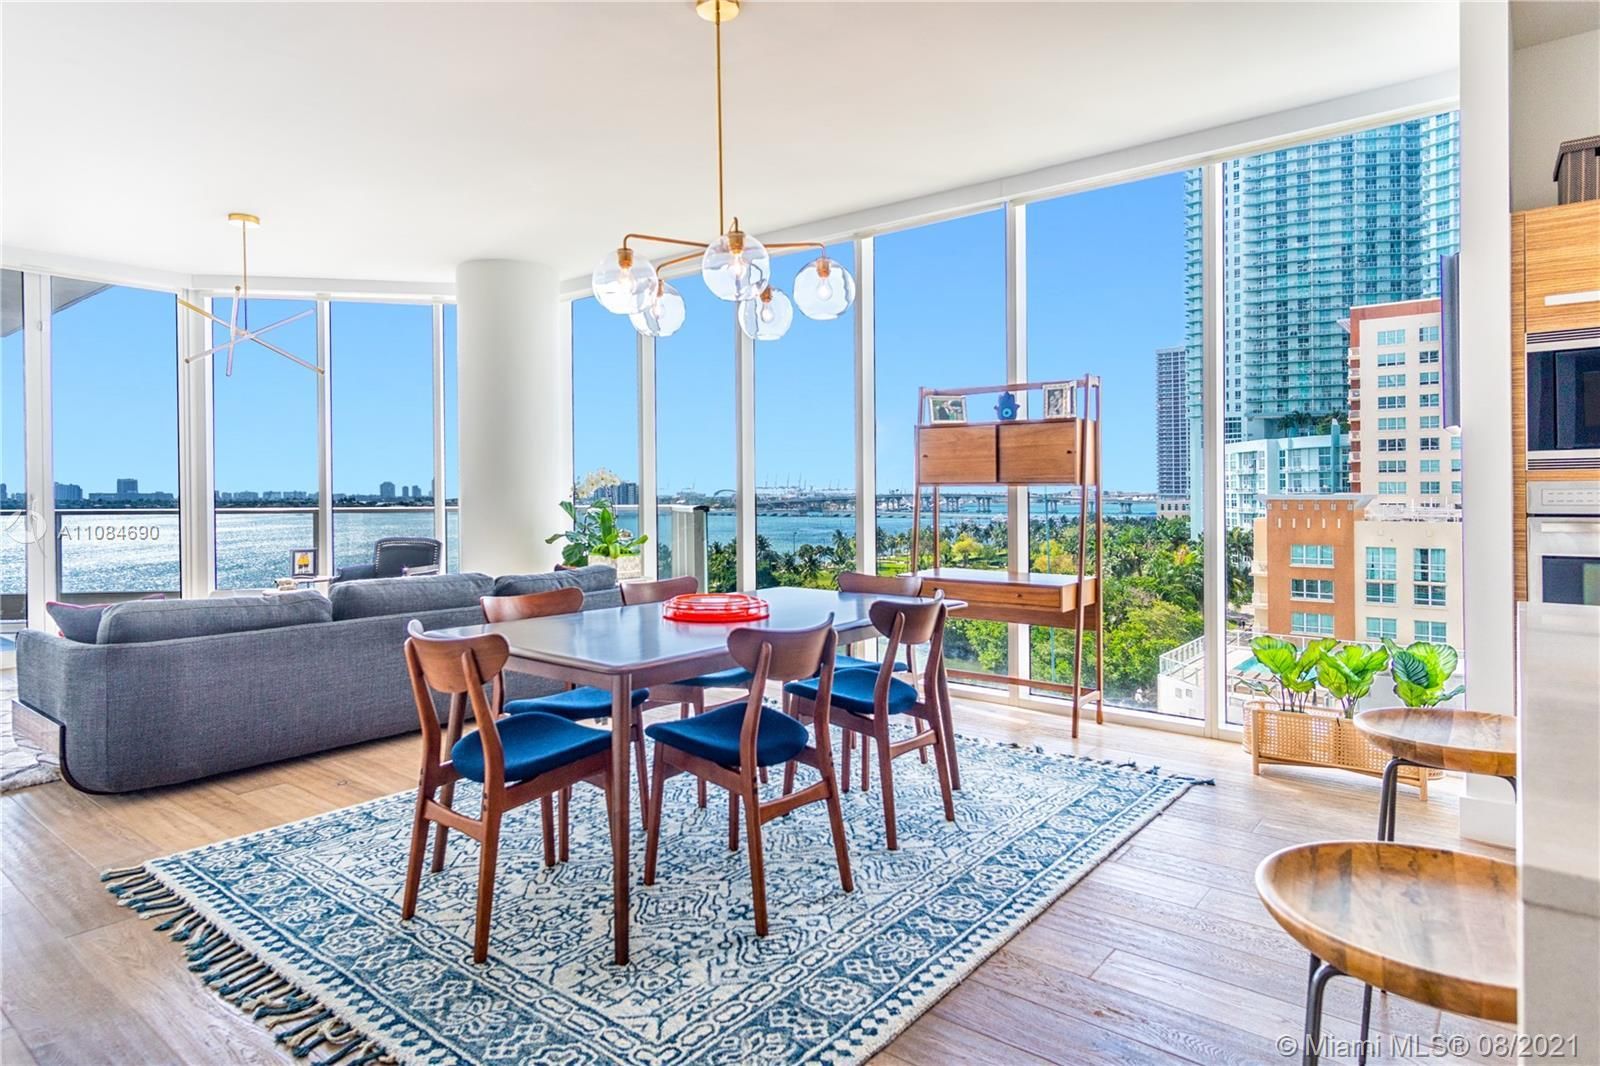 STUNNING BAY VIEWS FROM THE BEST SELLING LINE AT PARAMOUNT BAY! This Largest of all floorplans was c